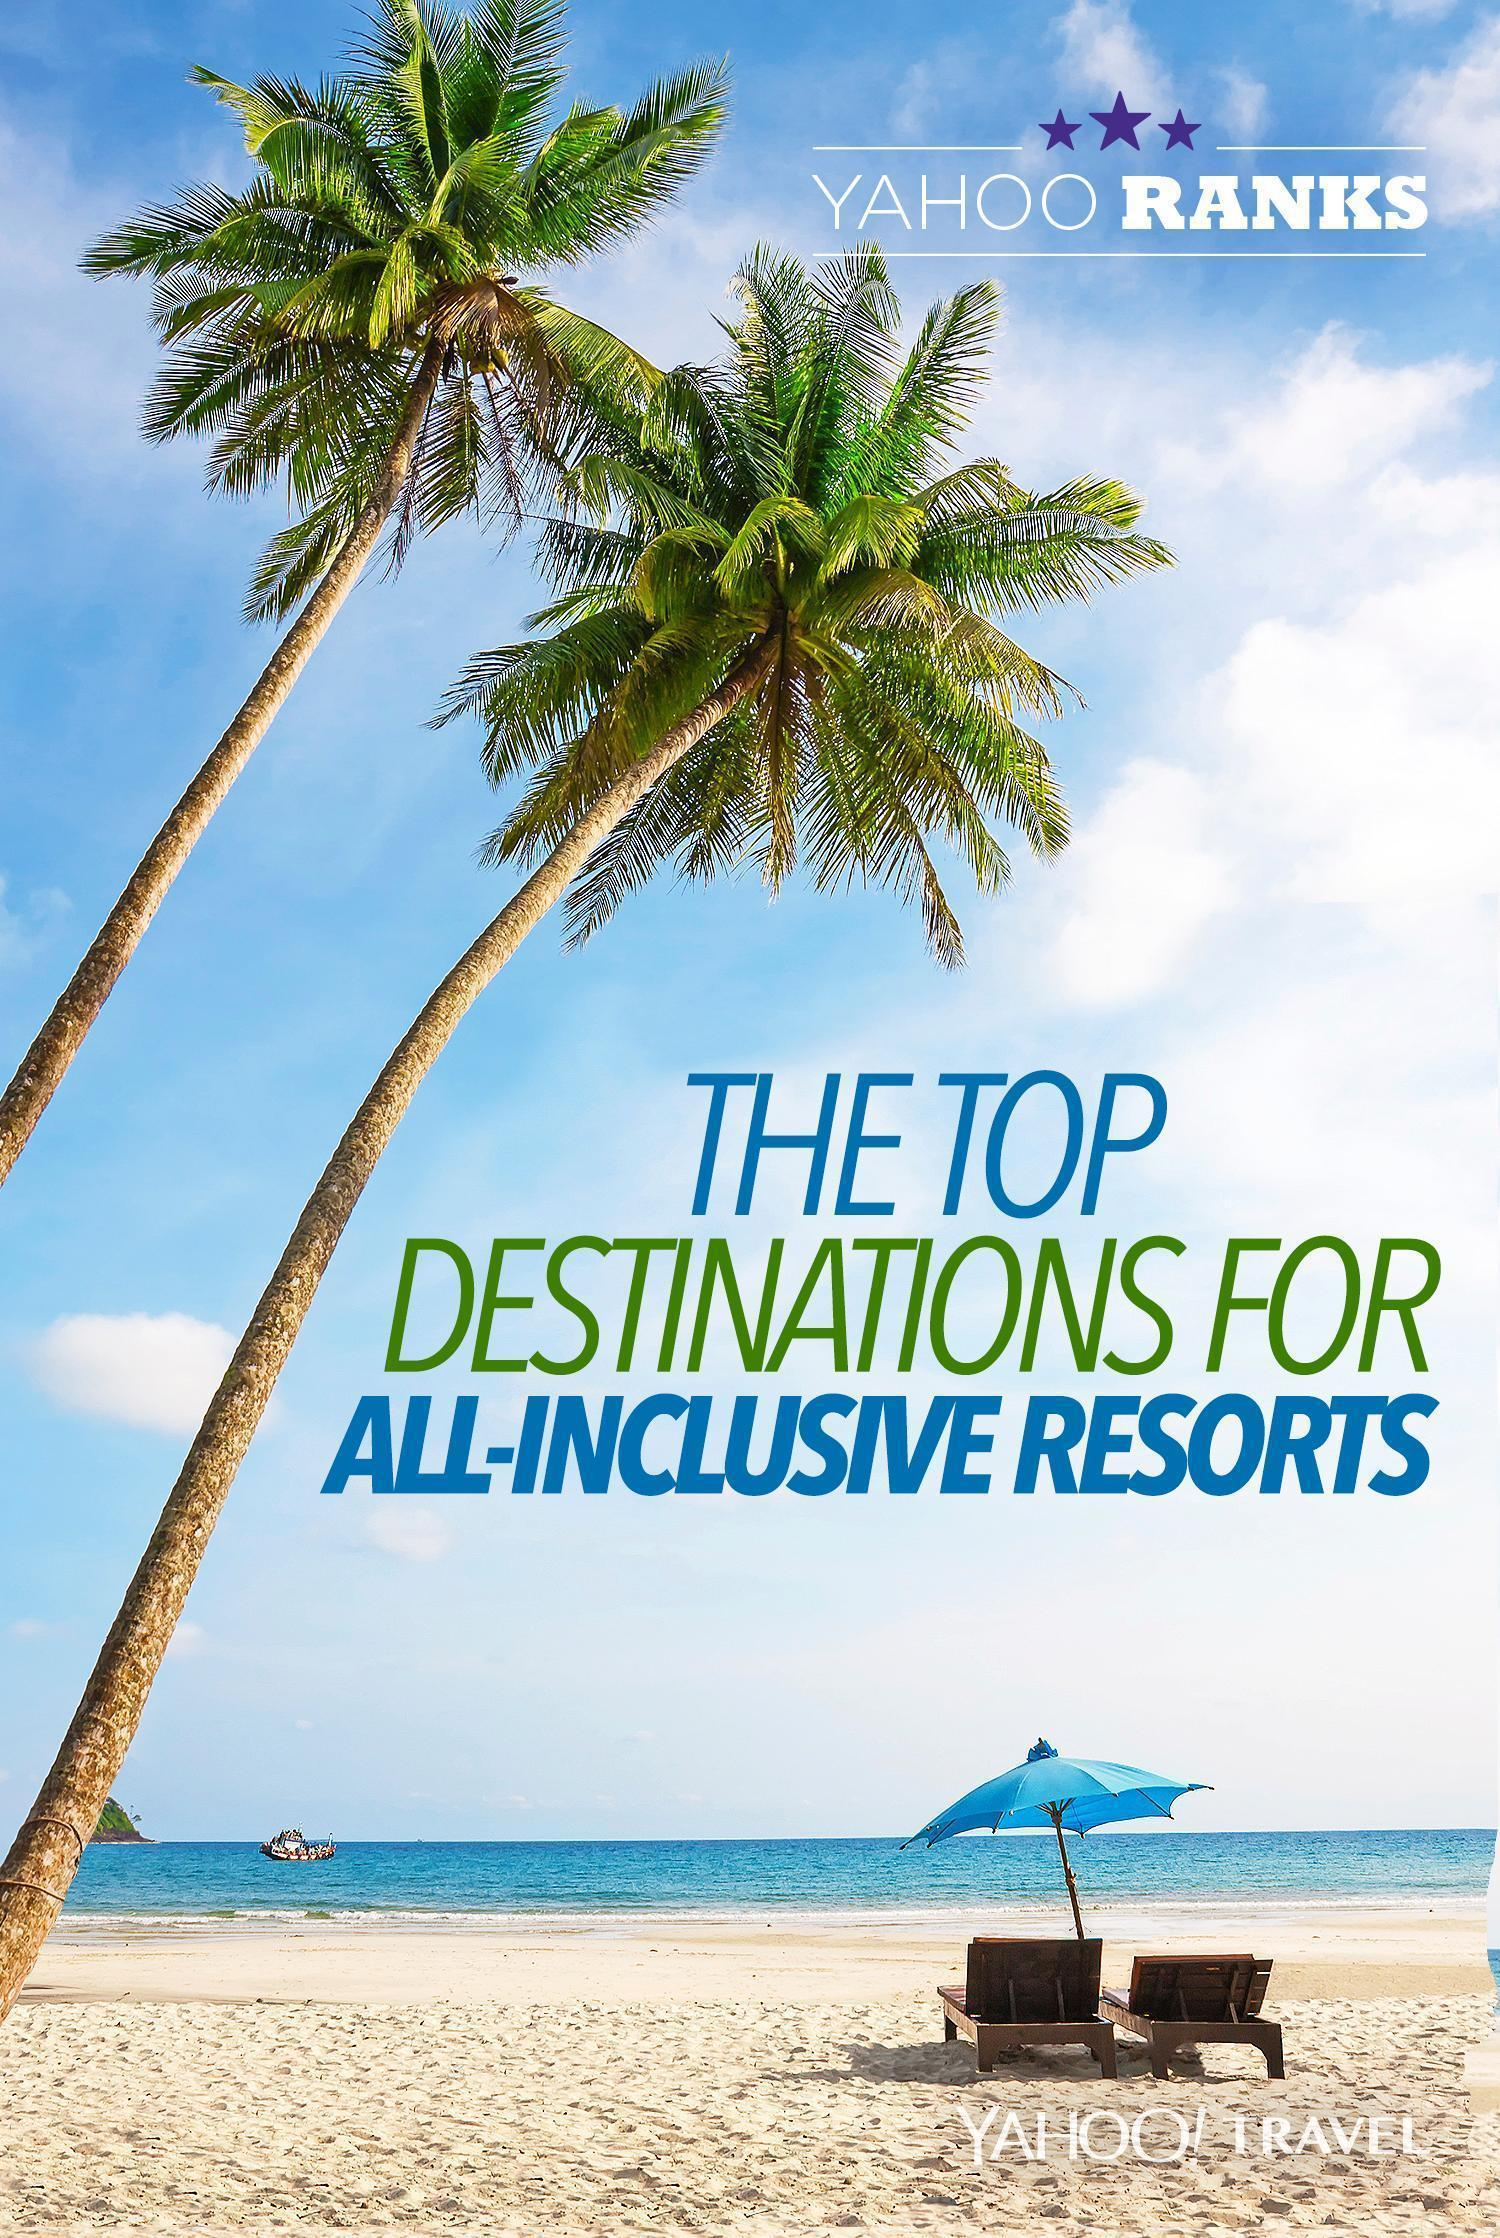 Yahoo Ranks The Top Destinations For All-Inclusive Resorts